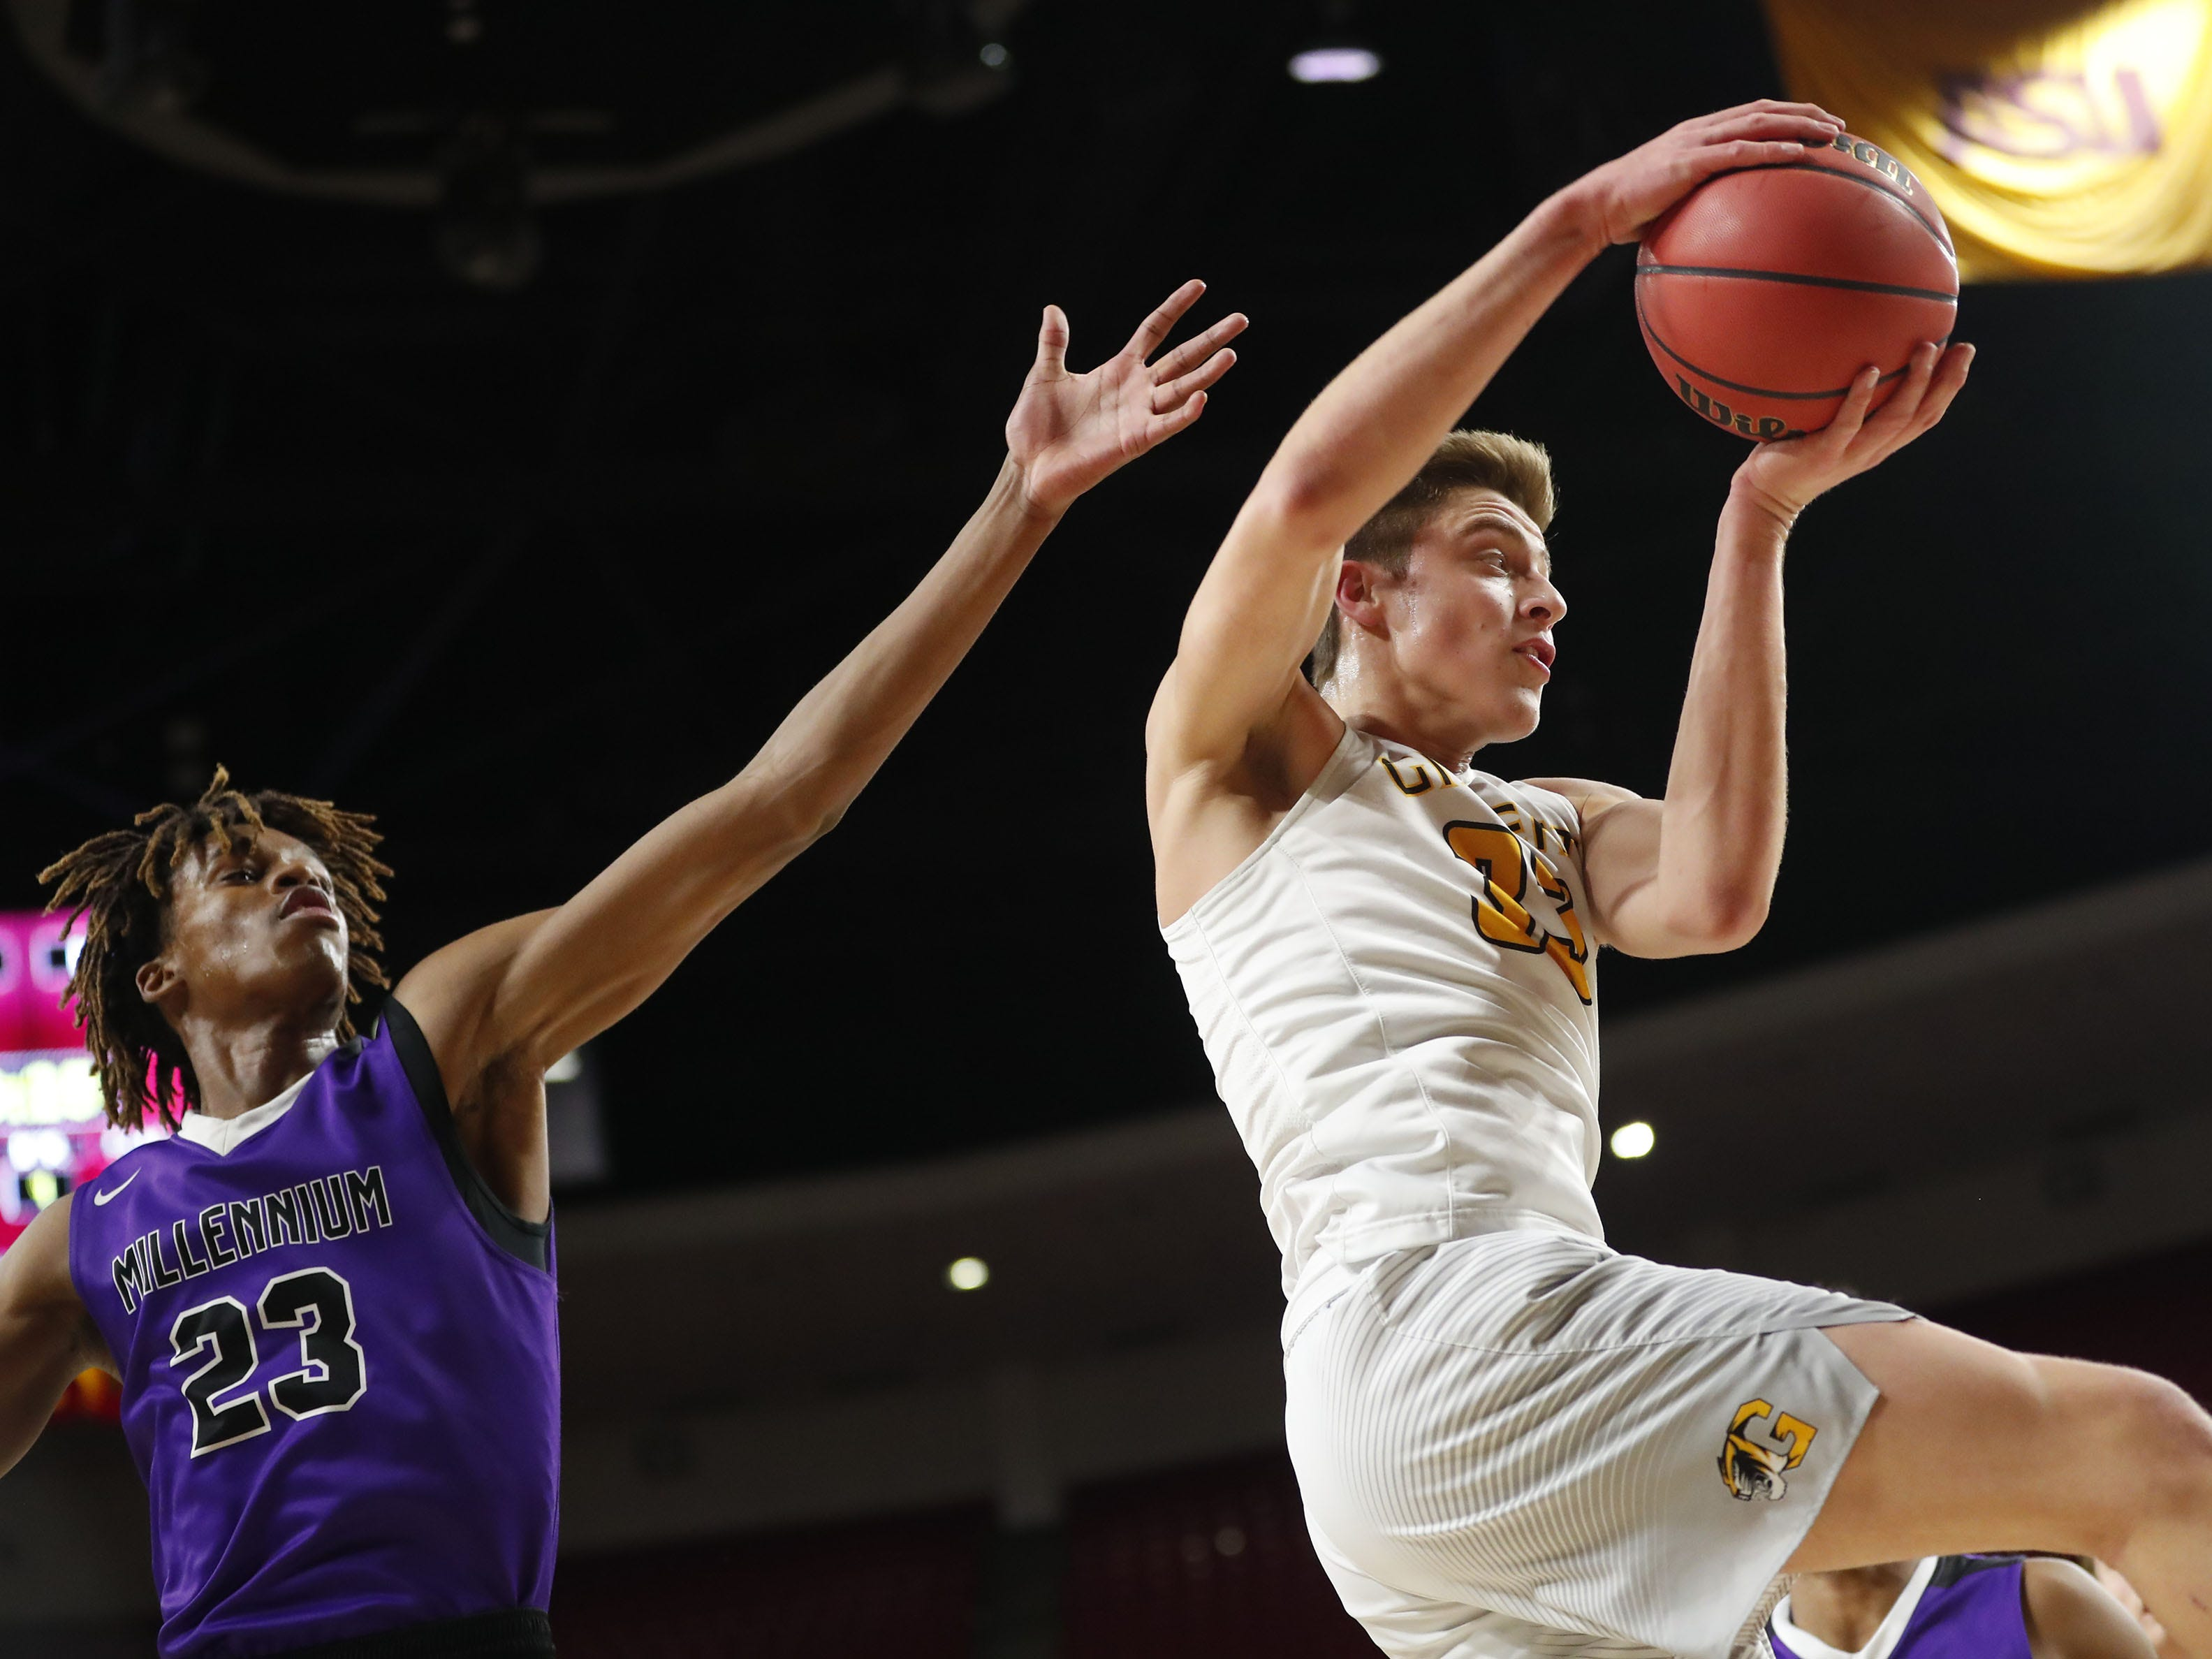 Gilbert's Carson Towt (33) grabs a rebound from Millennium's DaRon Holmes (23) during the Boys State 5A Championship game in Tempe, Ariz. Feb. 25, 2019.